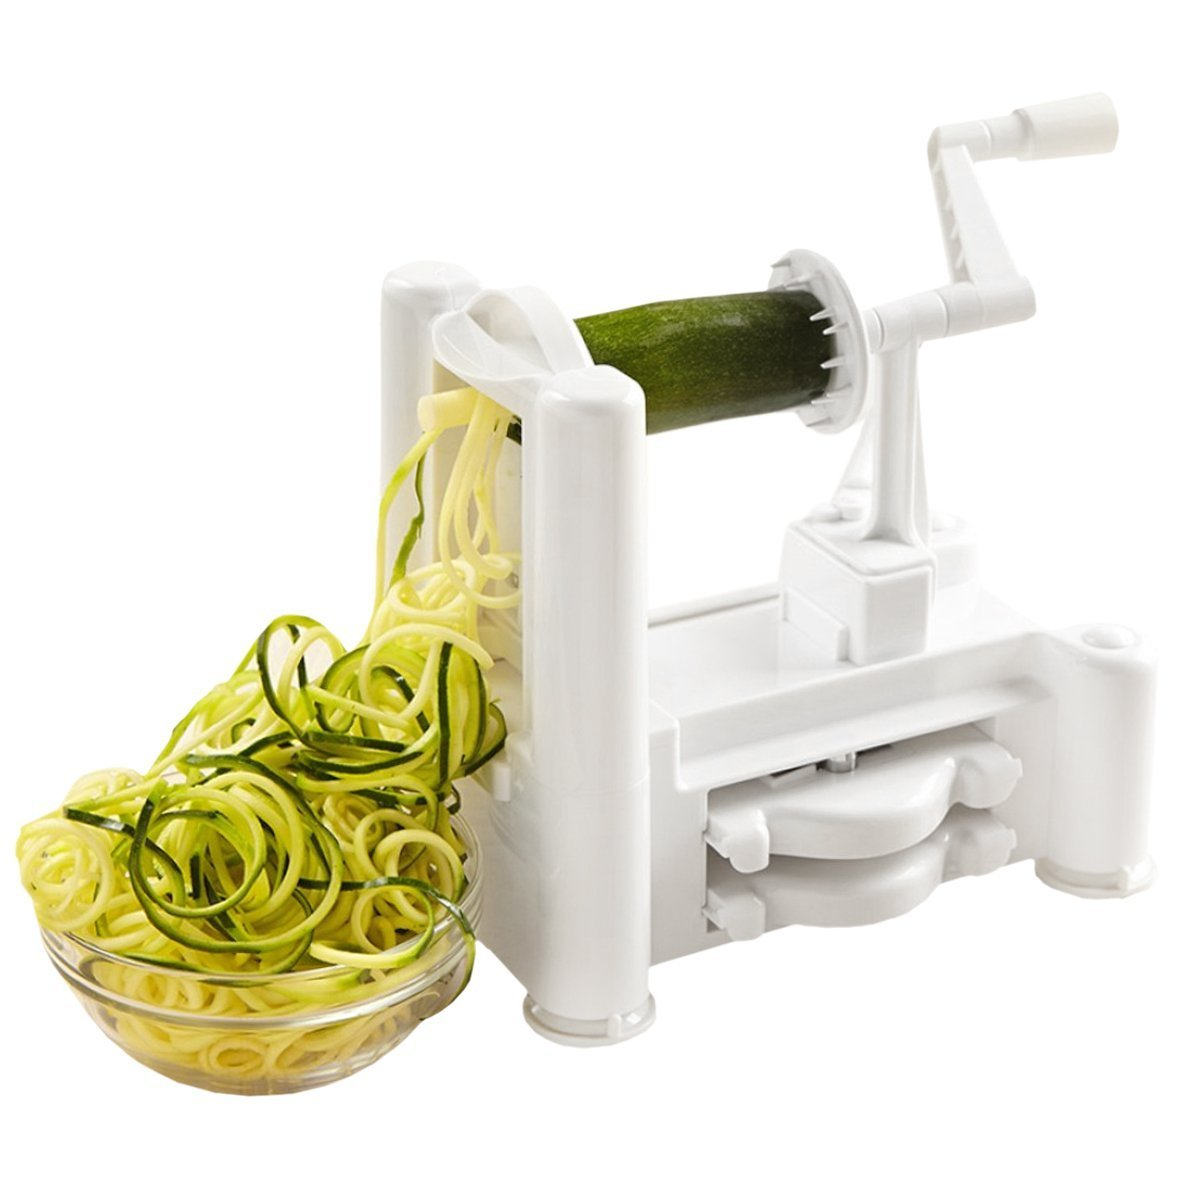 The Best Zoodle Maker For Your Fruits And Vegetables